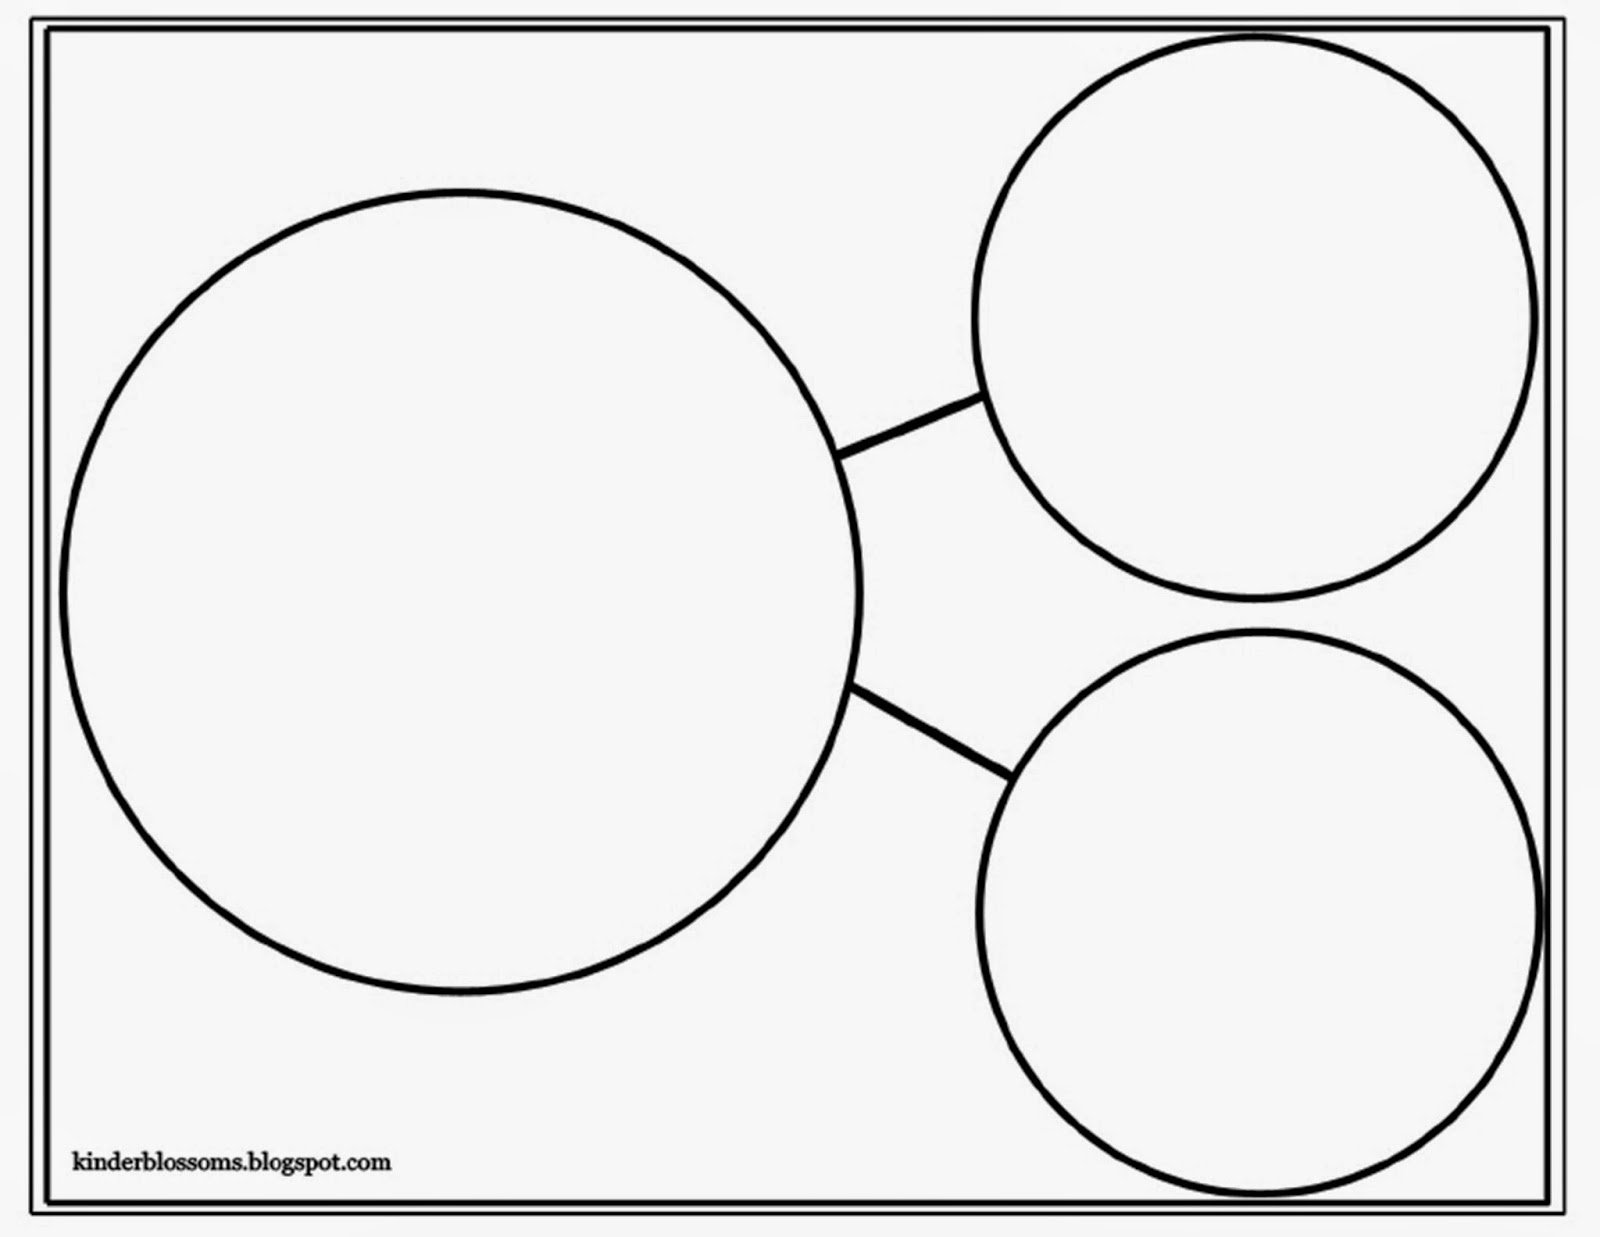 number bond template 28 images s kinder blossoms number bonds – Number Bonds Worksheets